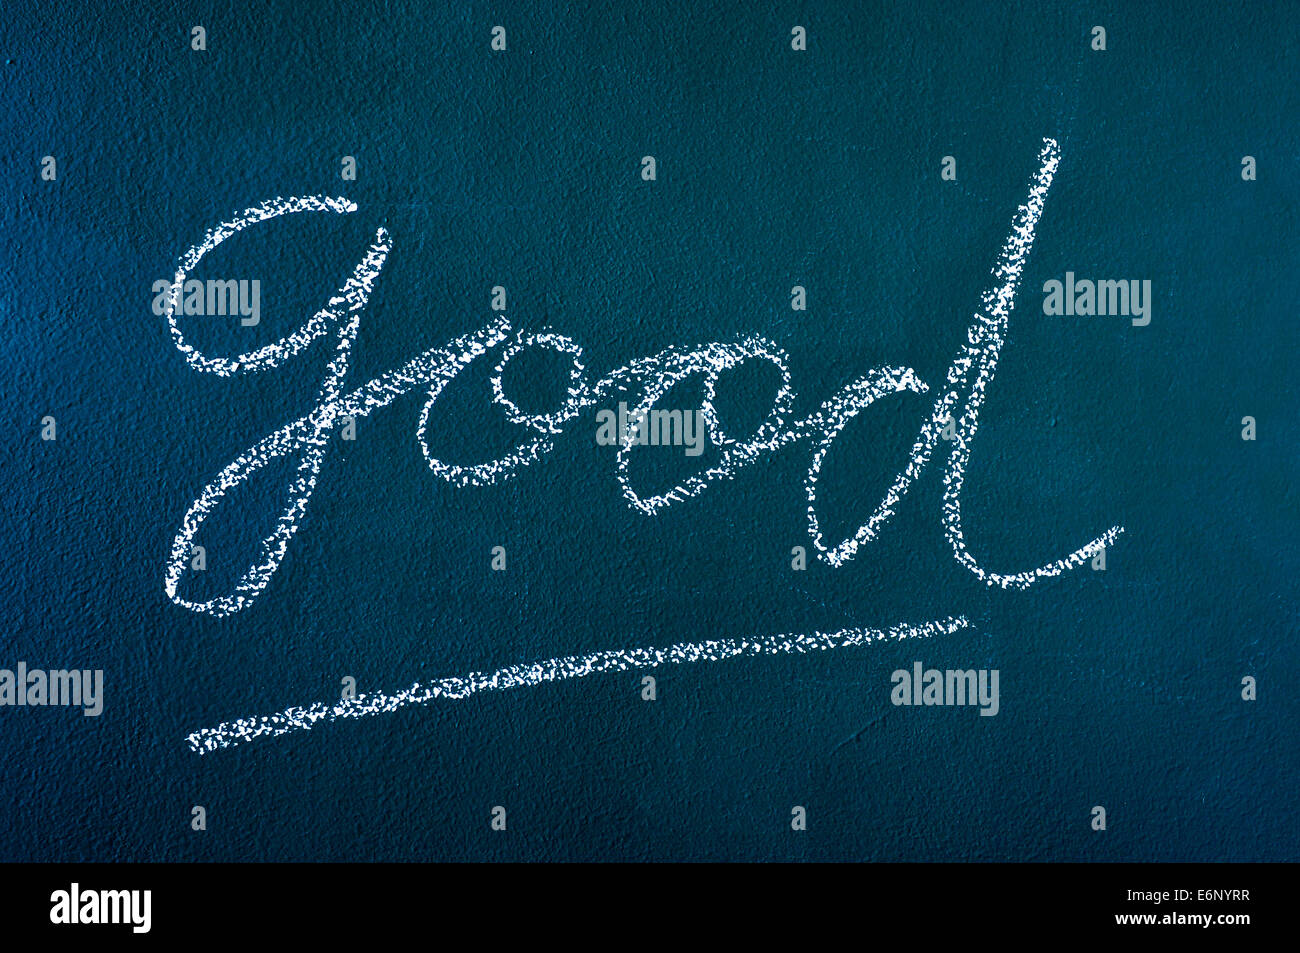 the word good written with chalk on a chalkboard - Stock Image